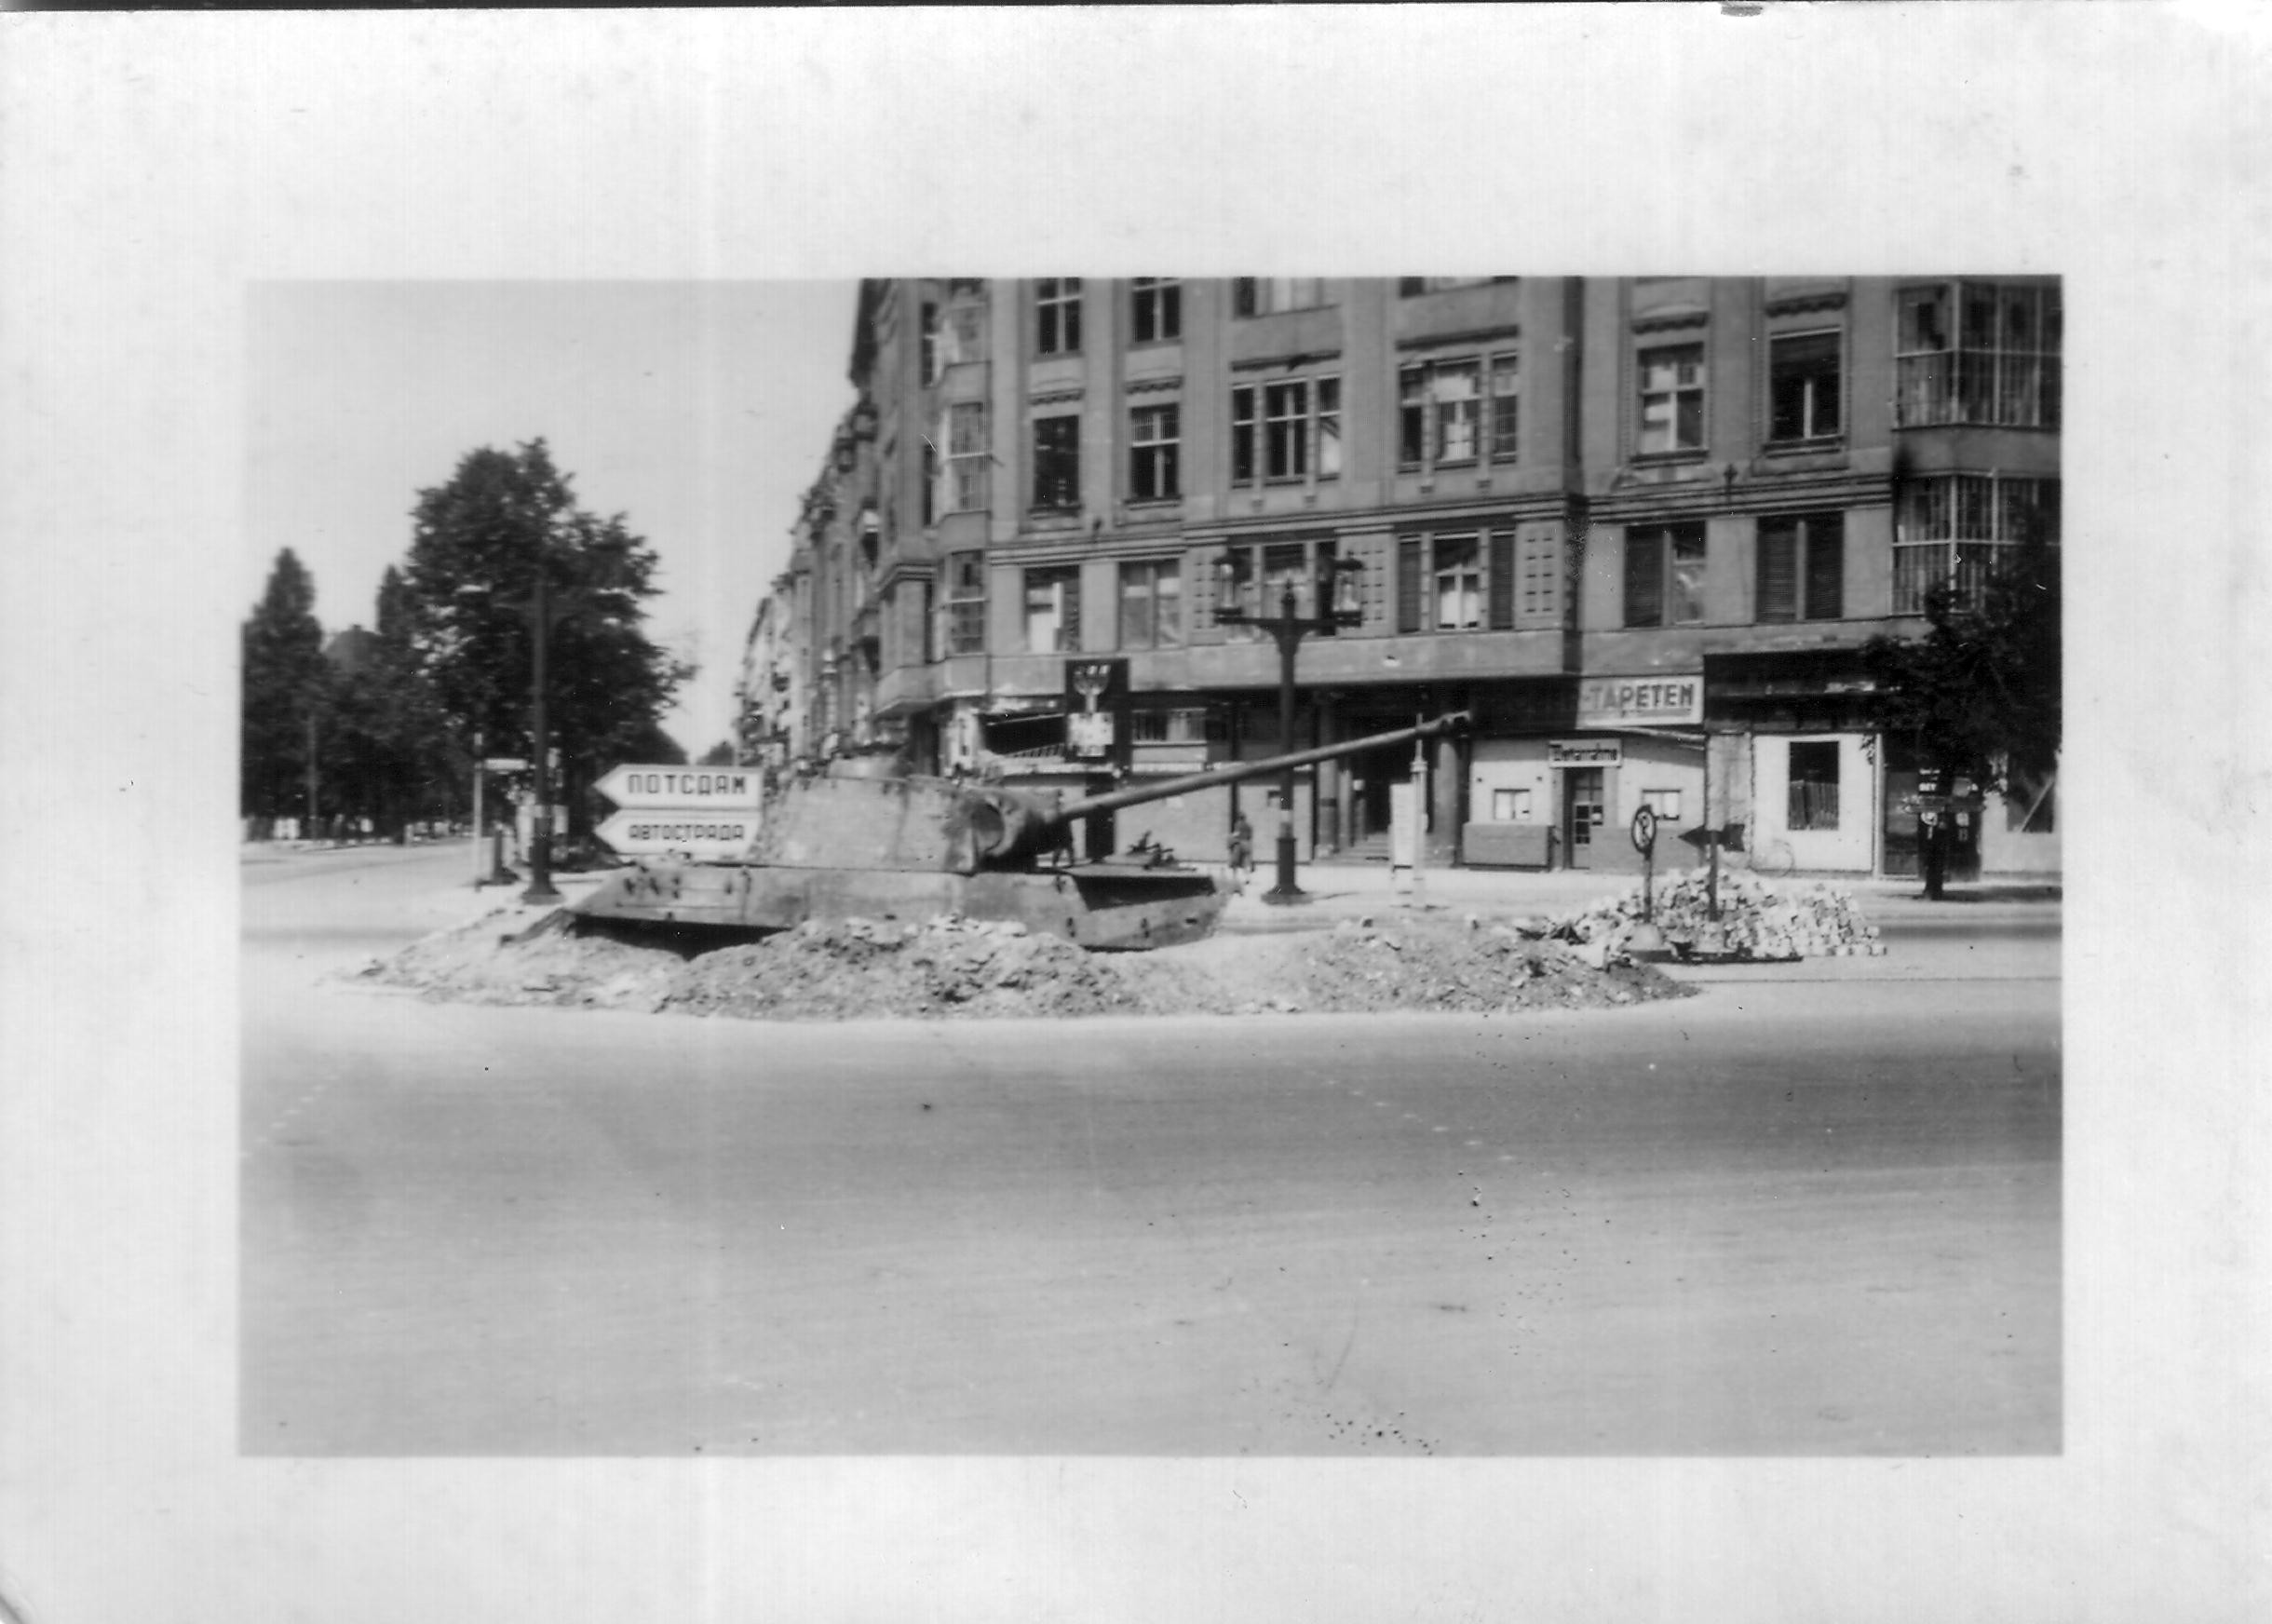 A hull down Panther tank in Berlin, with a Russian sign behind it.